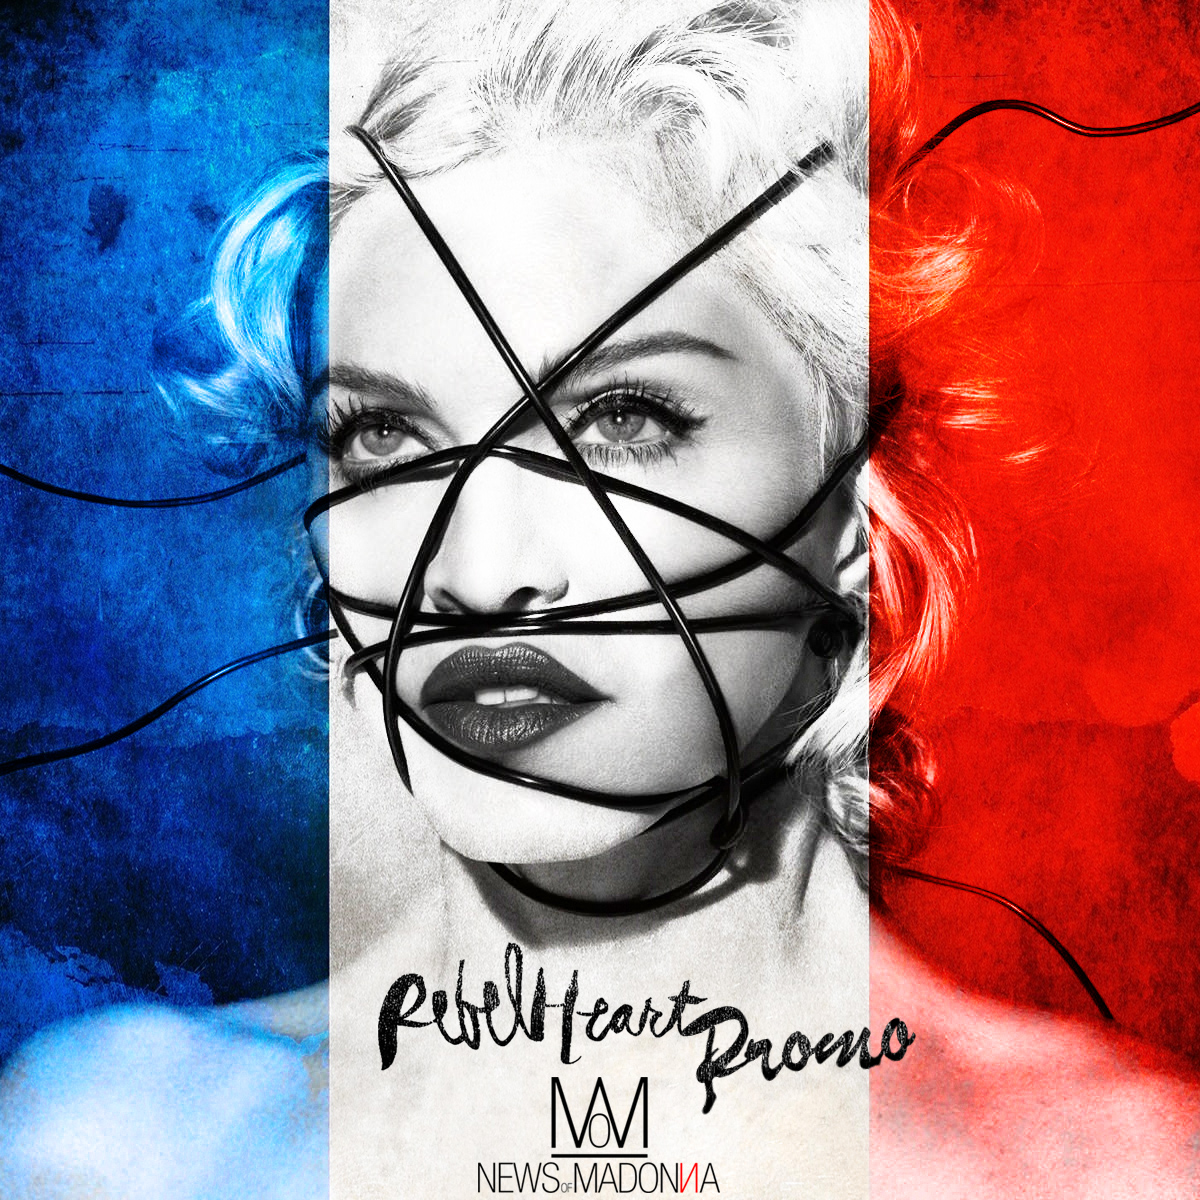 Madonna : Rebel Heart promo tour